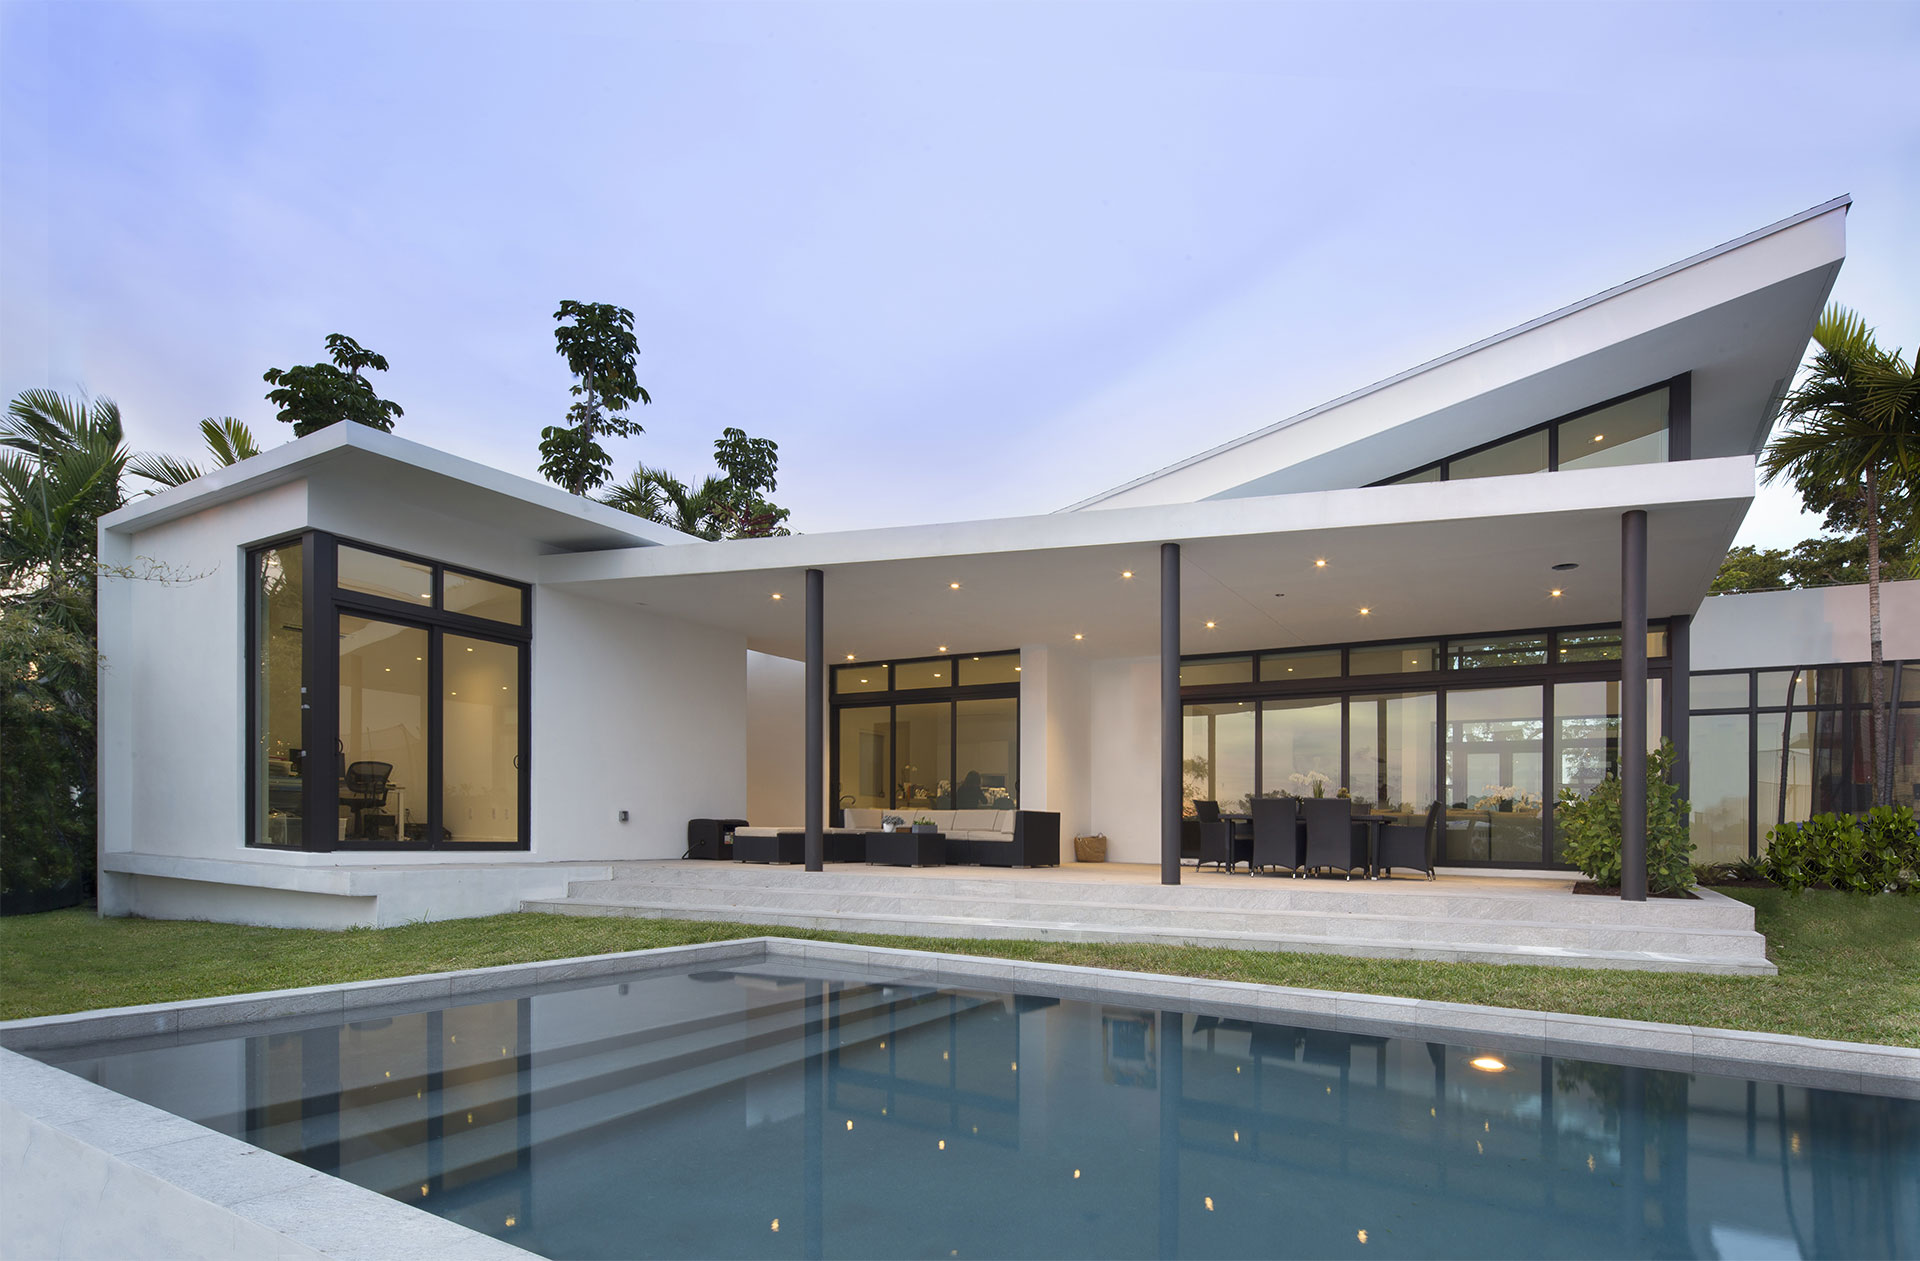 Exterior Architecture swimming pool view project in Sky Lake I, Florida